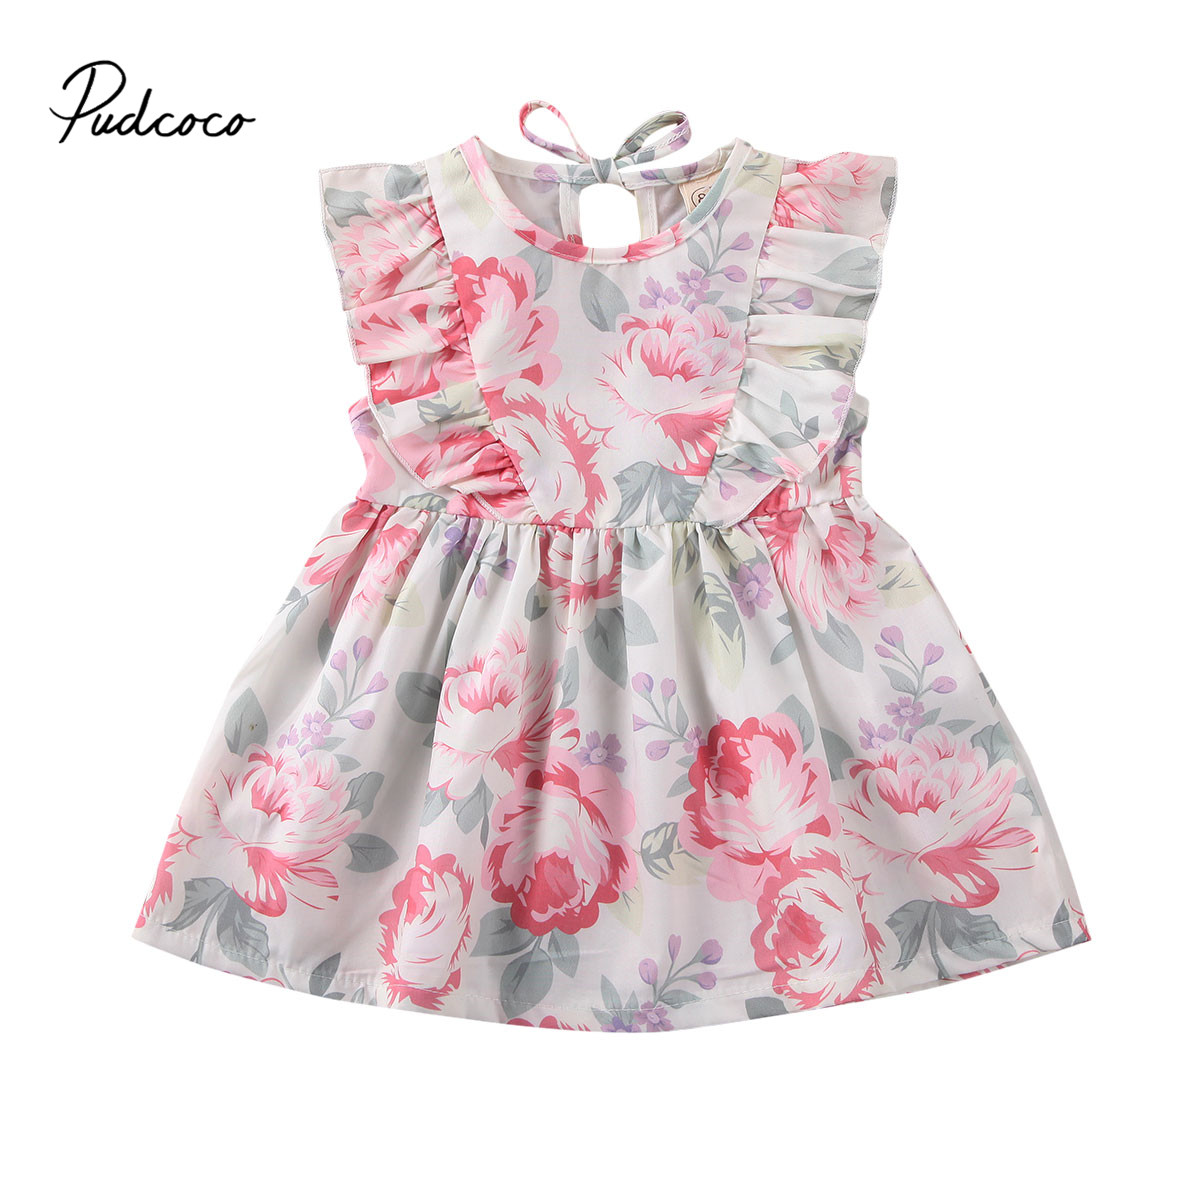 Pudcoco Toddler Baby Girl Floral Dress Kids Summer Clothes Ruffle Sleeve Flower Vestidos Holiday Sundress